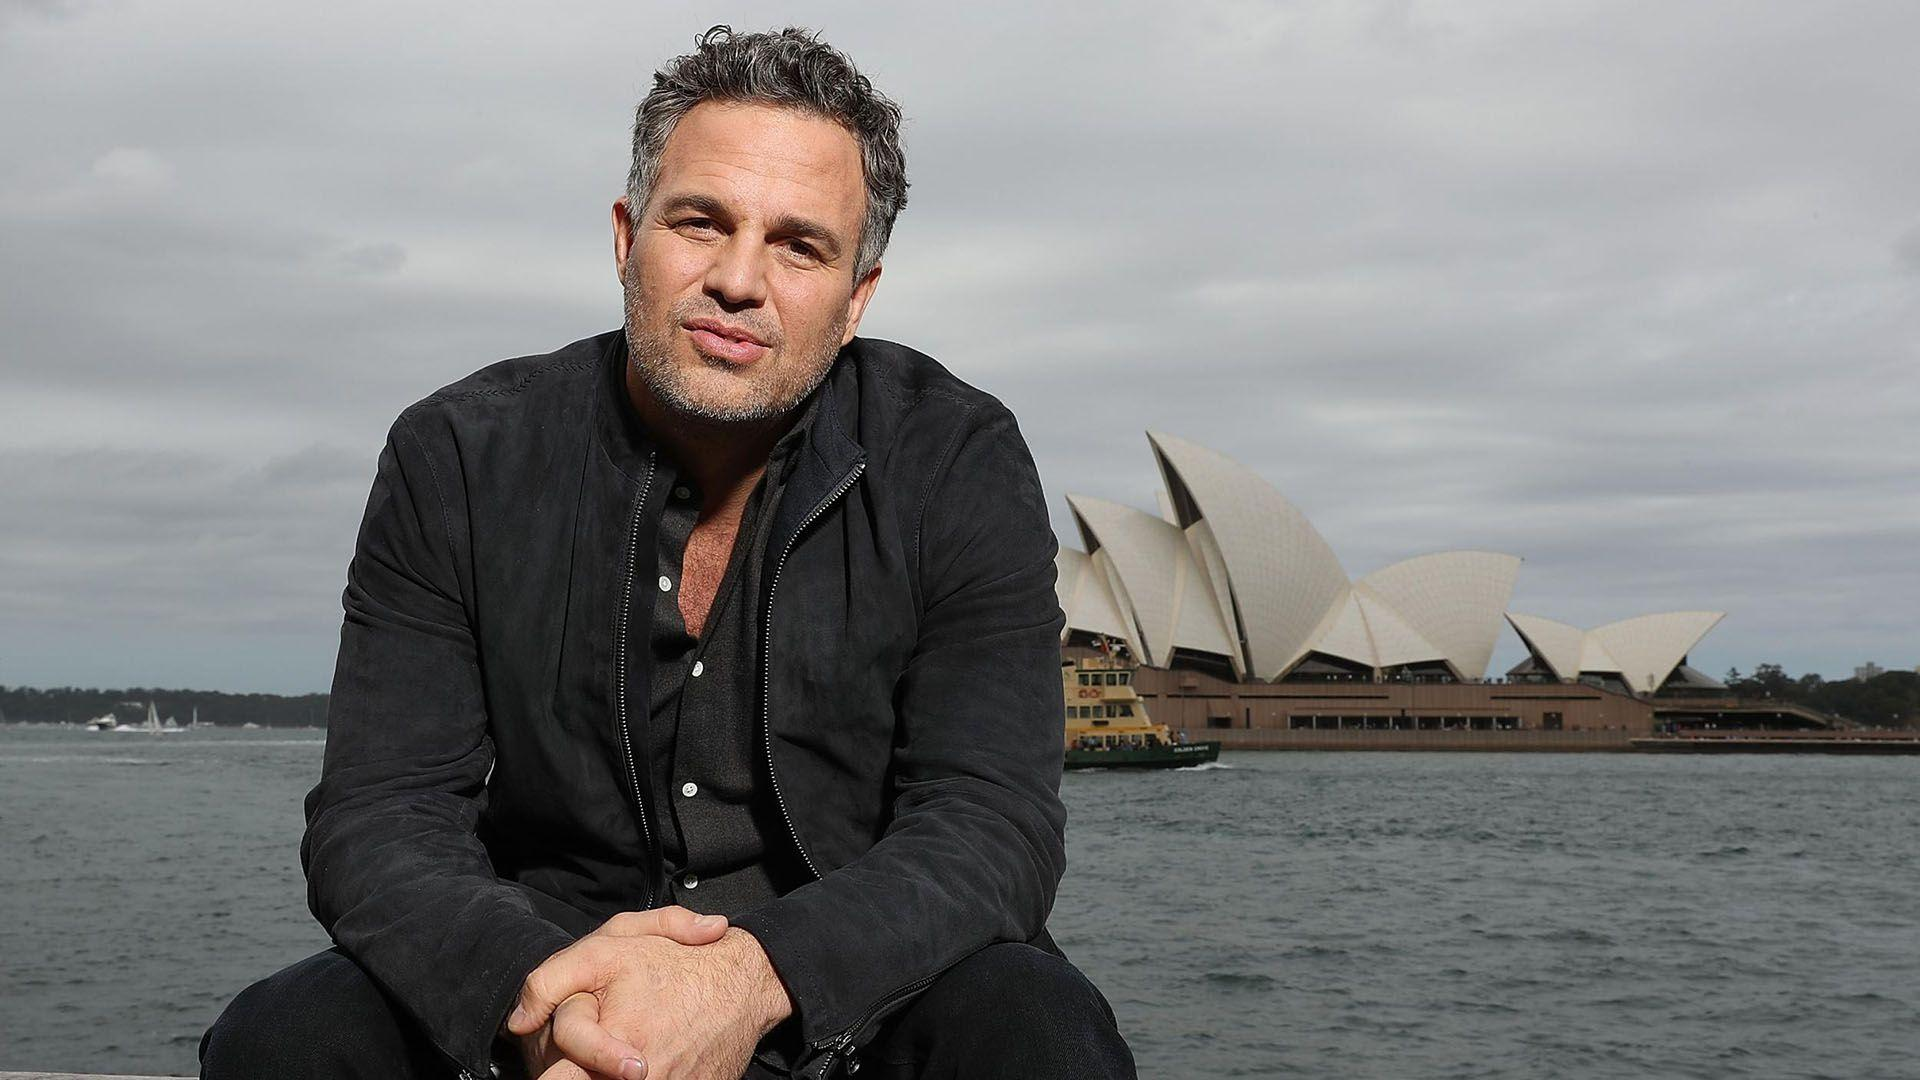 Mark Ruffalo New Best Image And 1080p Full HD Wallpapers